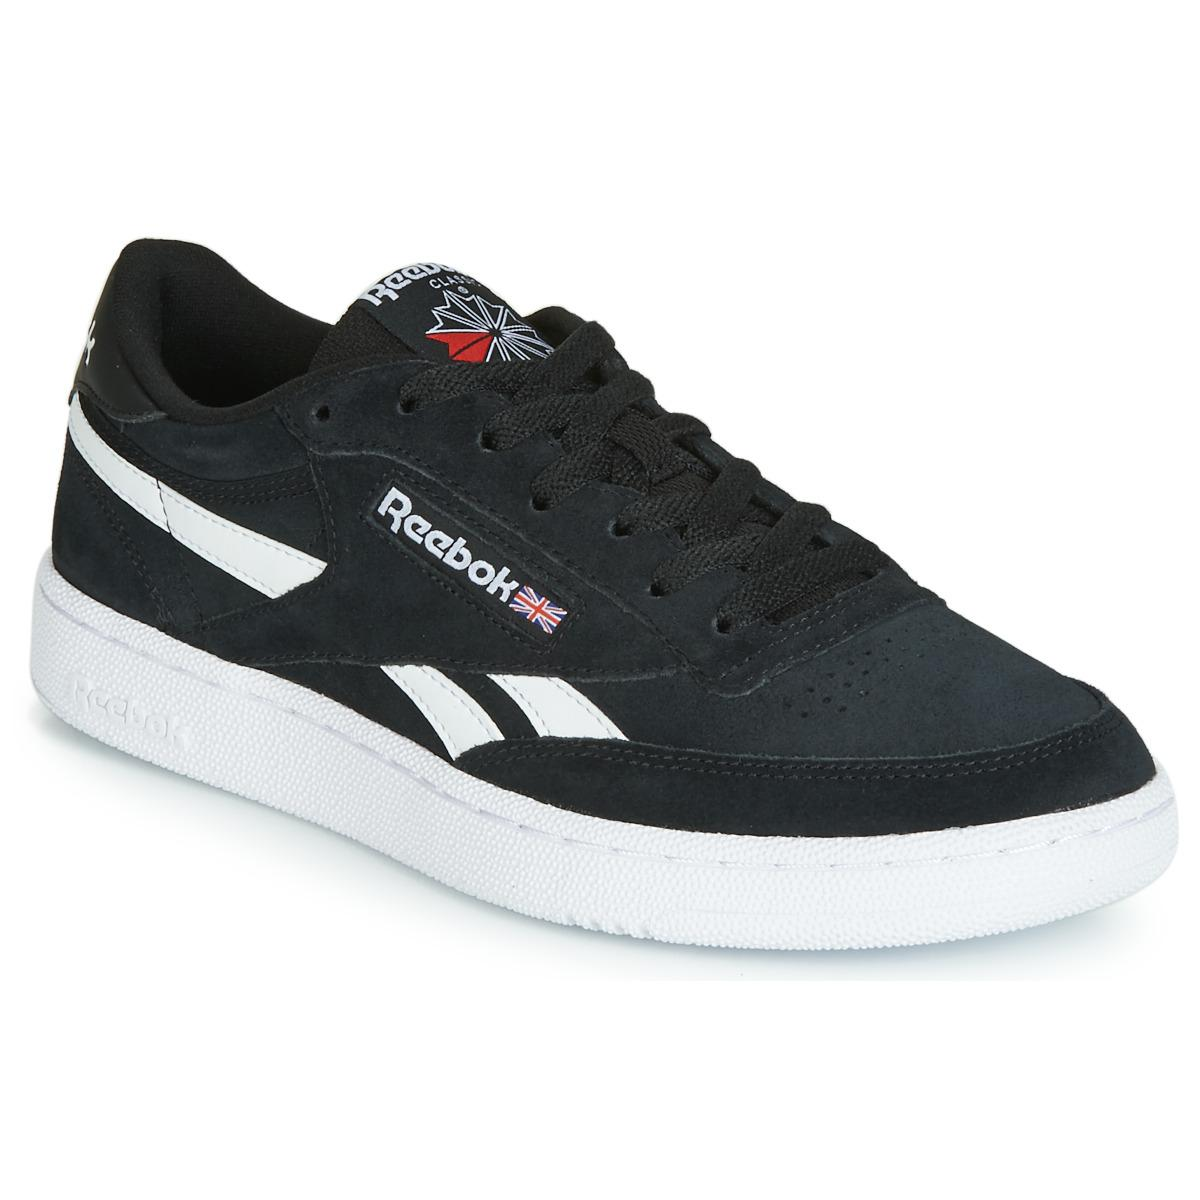 92416da46a9d21 Reebok Revenge Plus Mu Women s Shoes (trainers) In Black in Black - Lyst